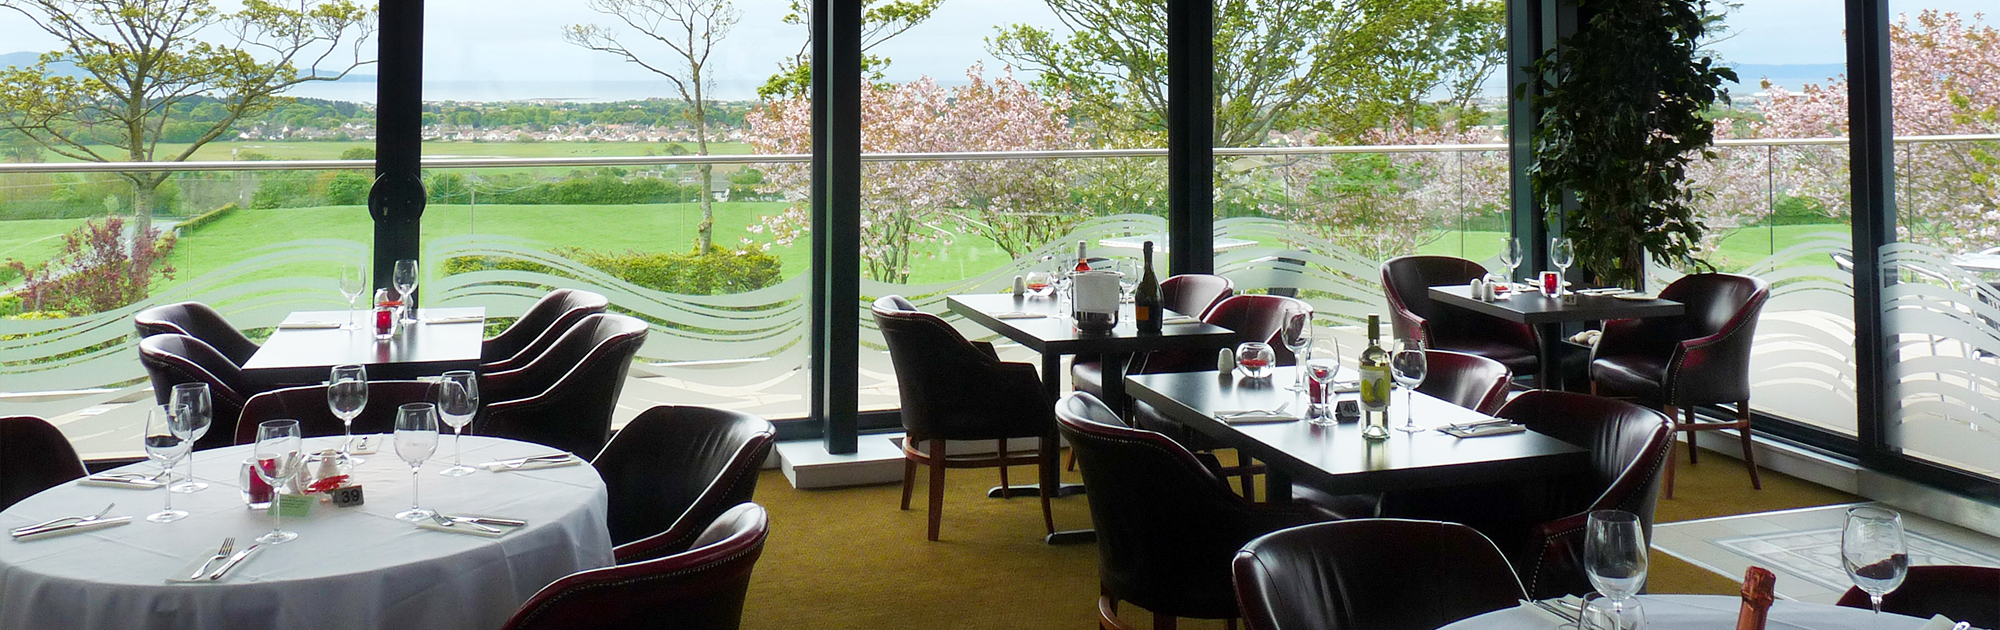 Perfect Vista: Our impressive new dining area offers stunning panoramic views of Ayrshire